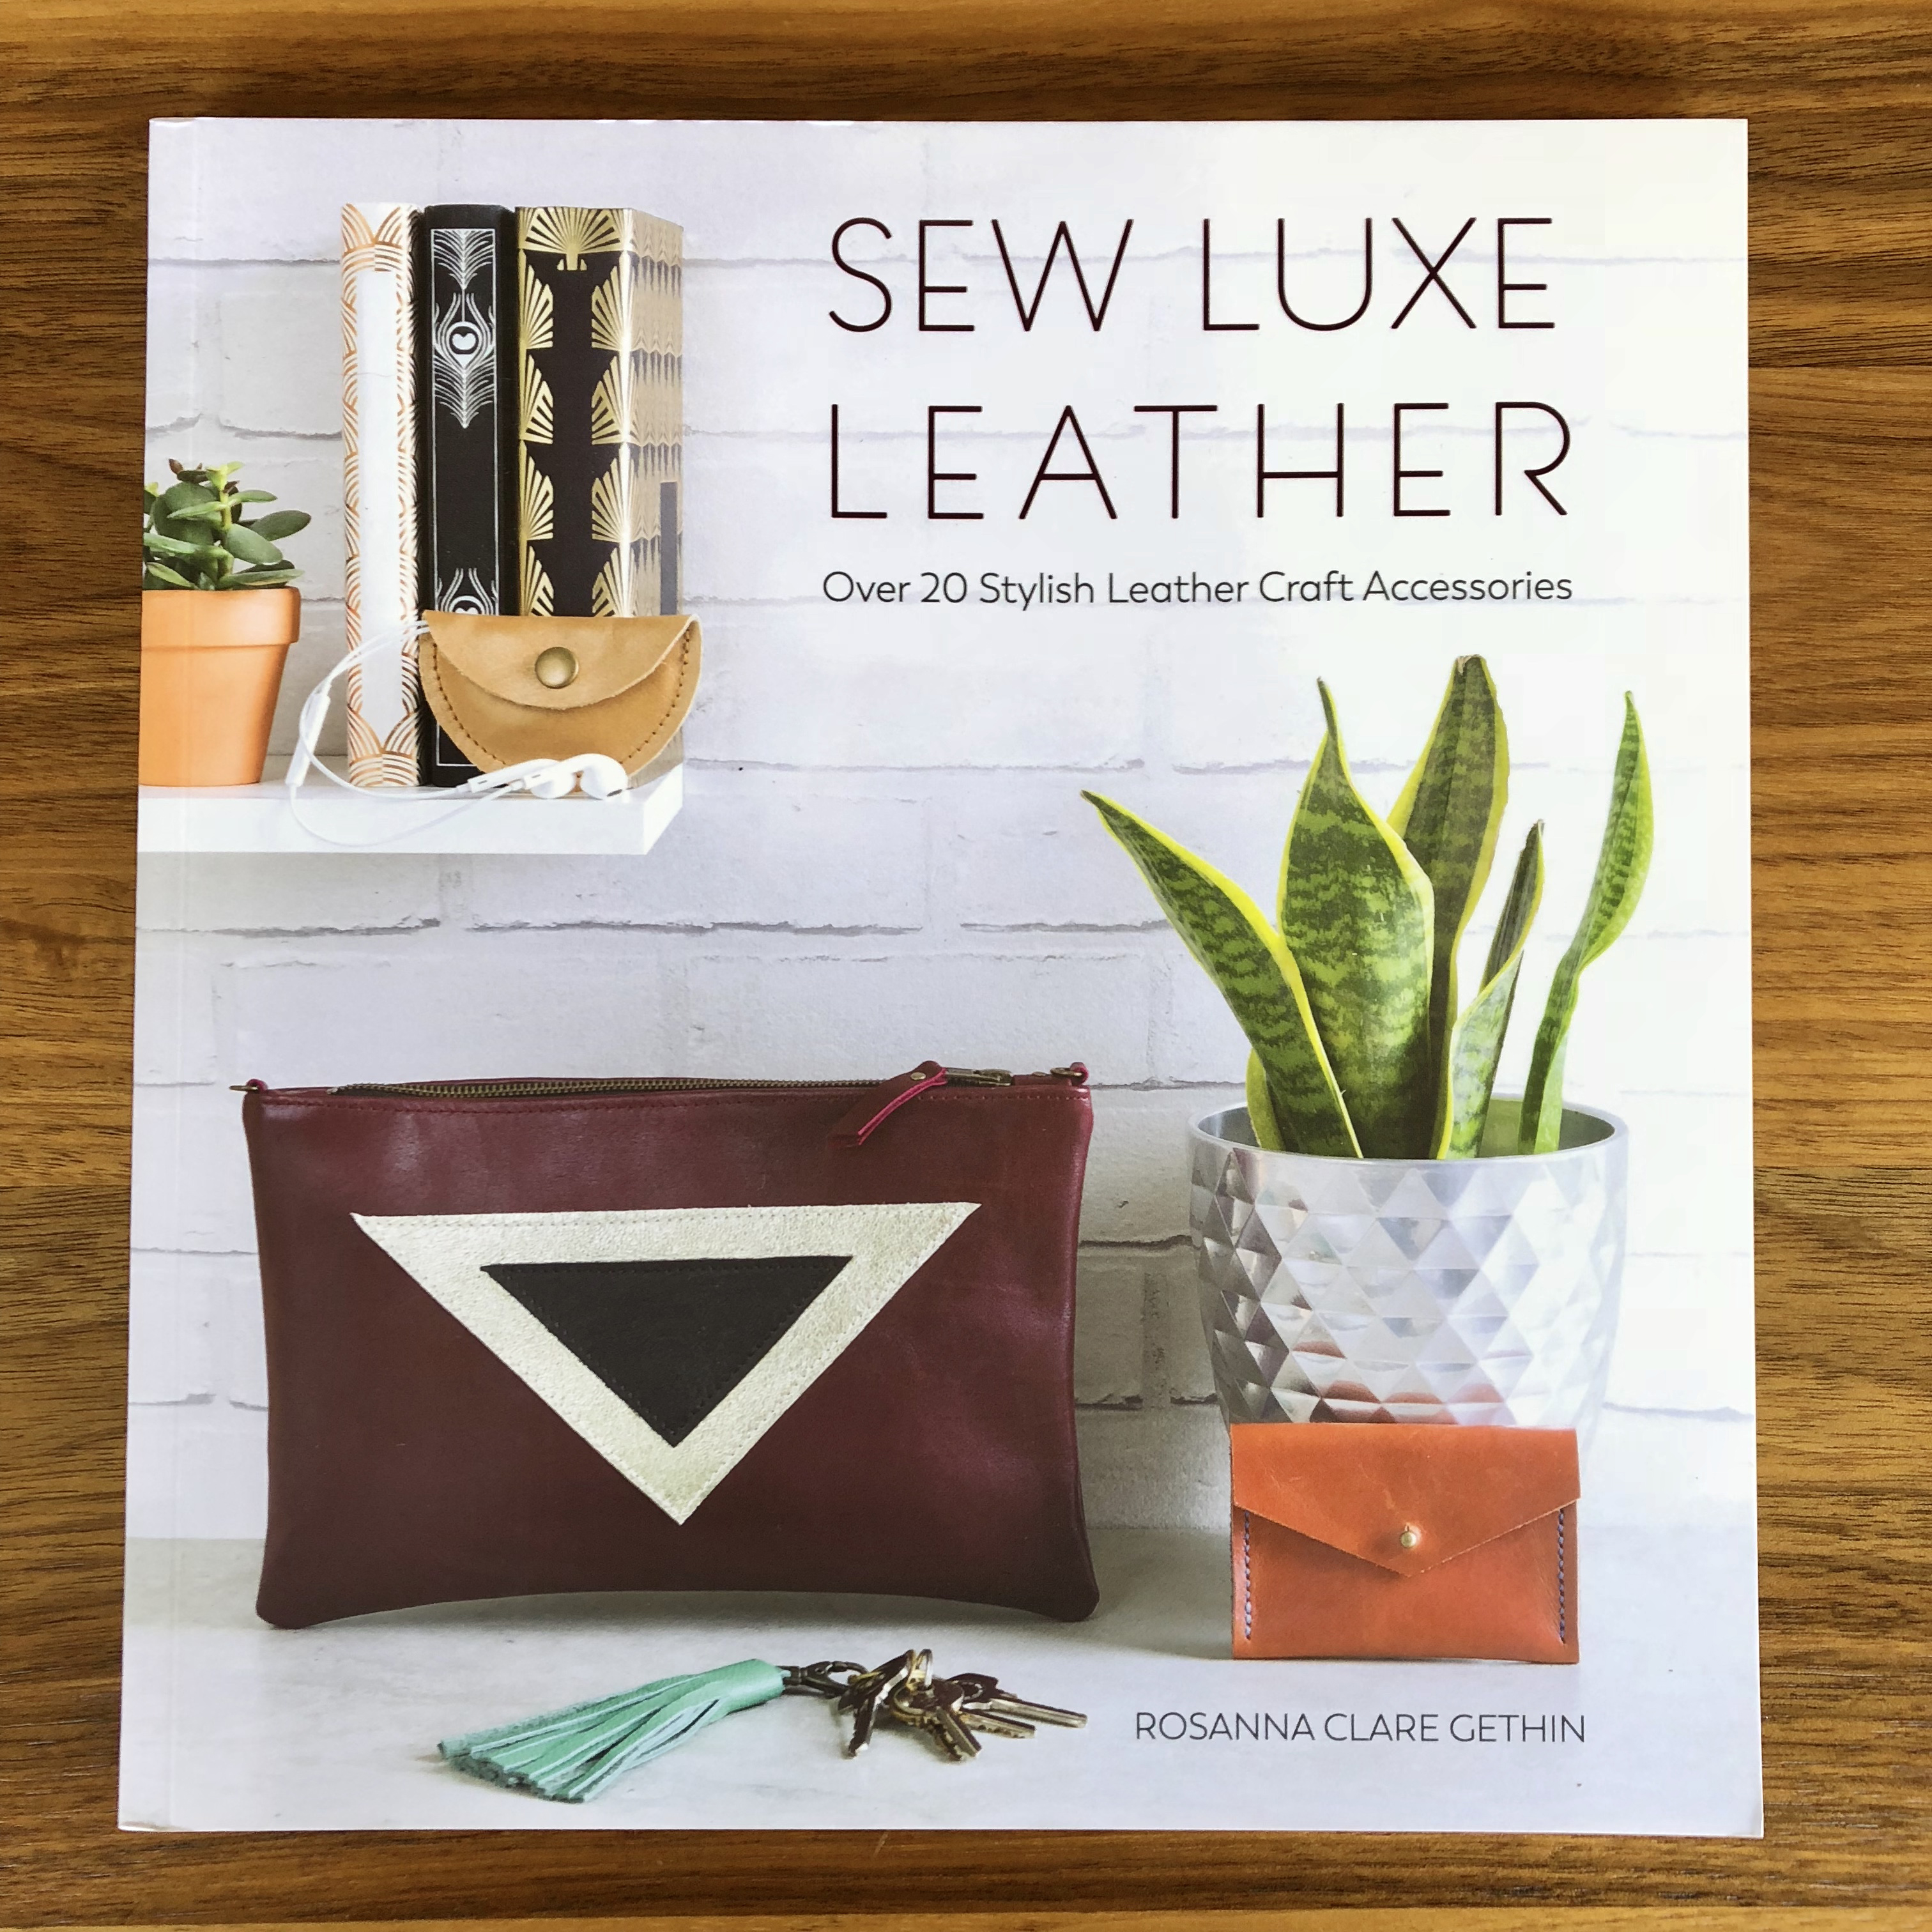 Sew Luxe Leather: Over 20 Stylish Leather Craft Accessories (Rosanna Clare Gethin)